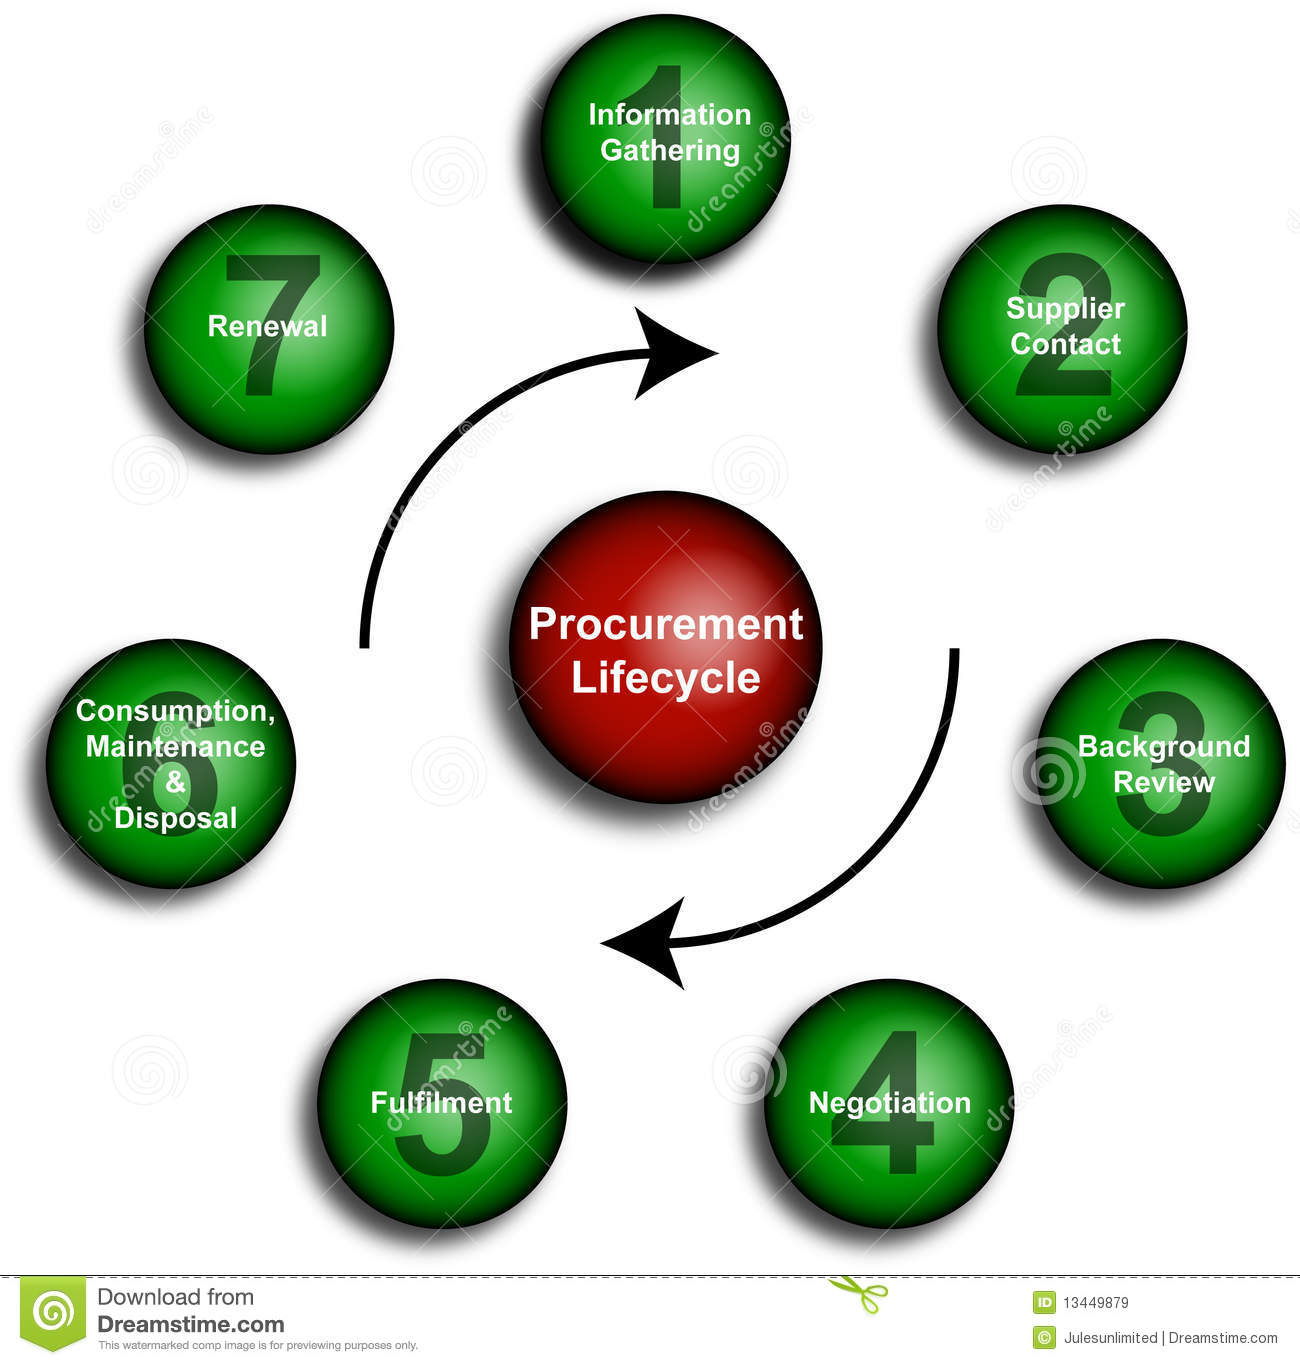 hight resolution of clear illustrations for business procurement lifecycles in a diagram